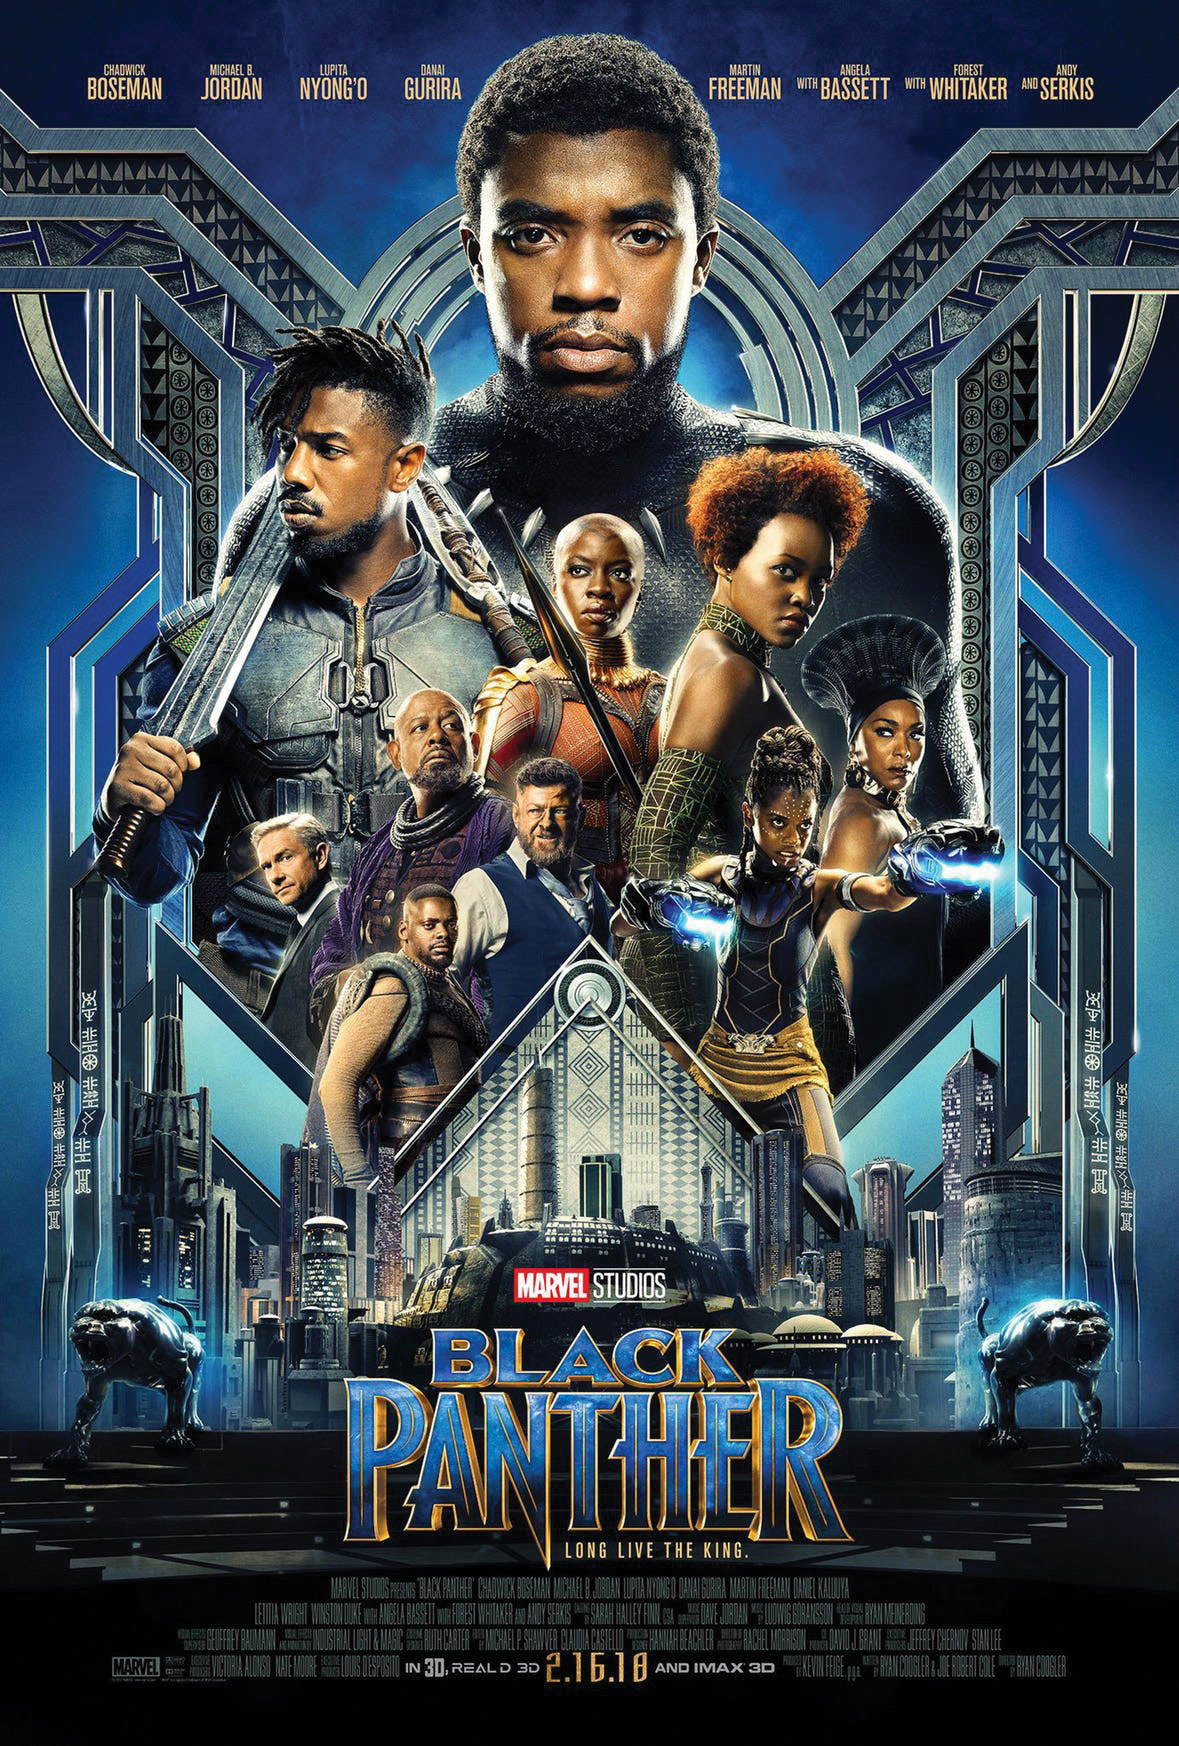 Black Panther Movie Poster.